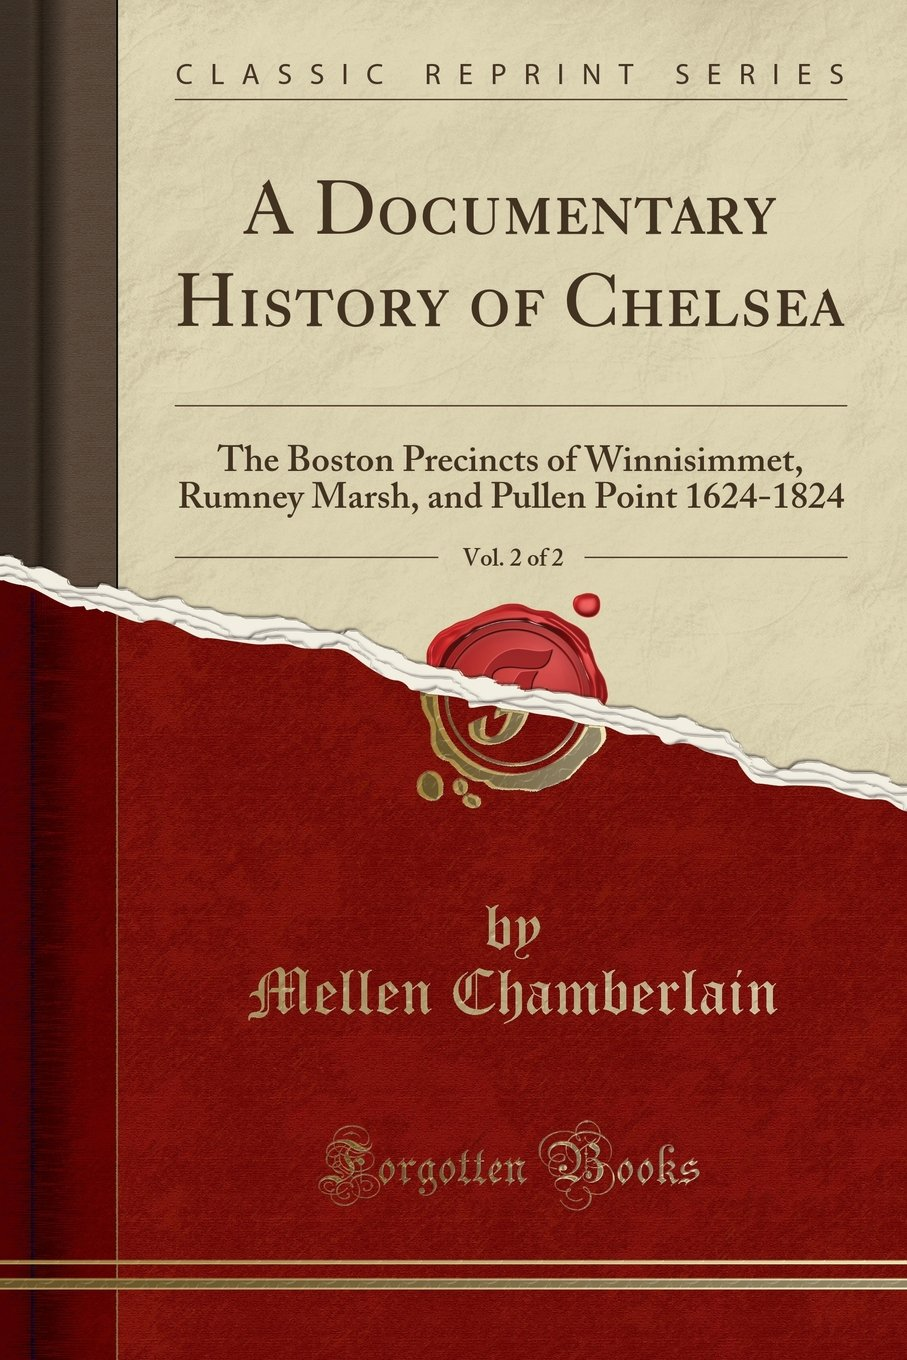 Download A Documentary History of Chelsea, Vol. 2 of 2: The Boston Precincts of Winnisimmet, Rumney Marsh, and Pullen Point 1624-1824 (Classic Reprint) PDF